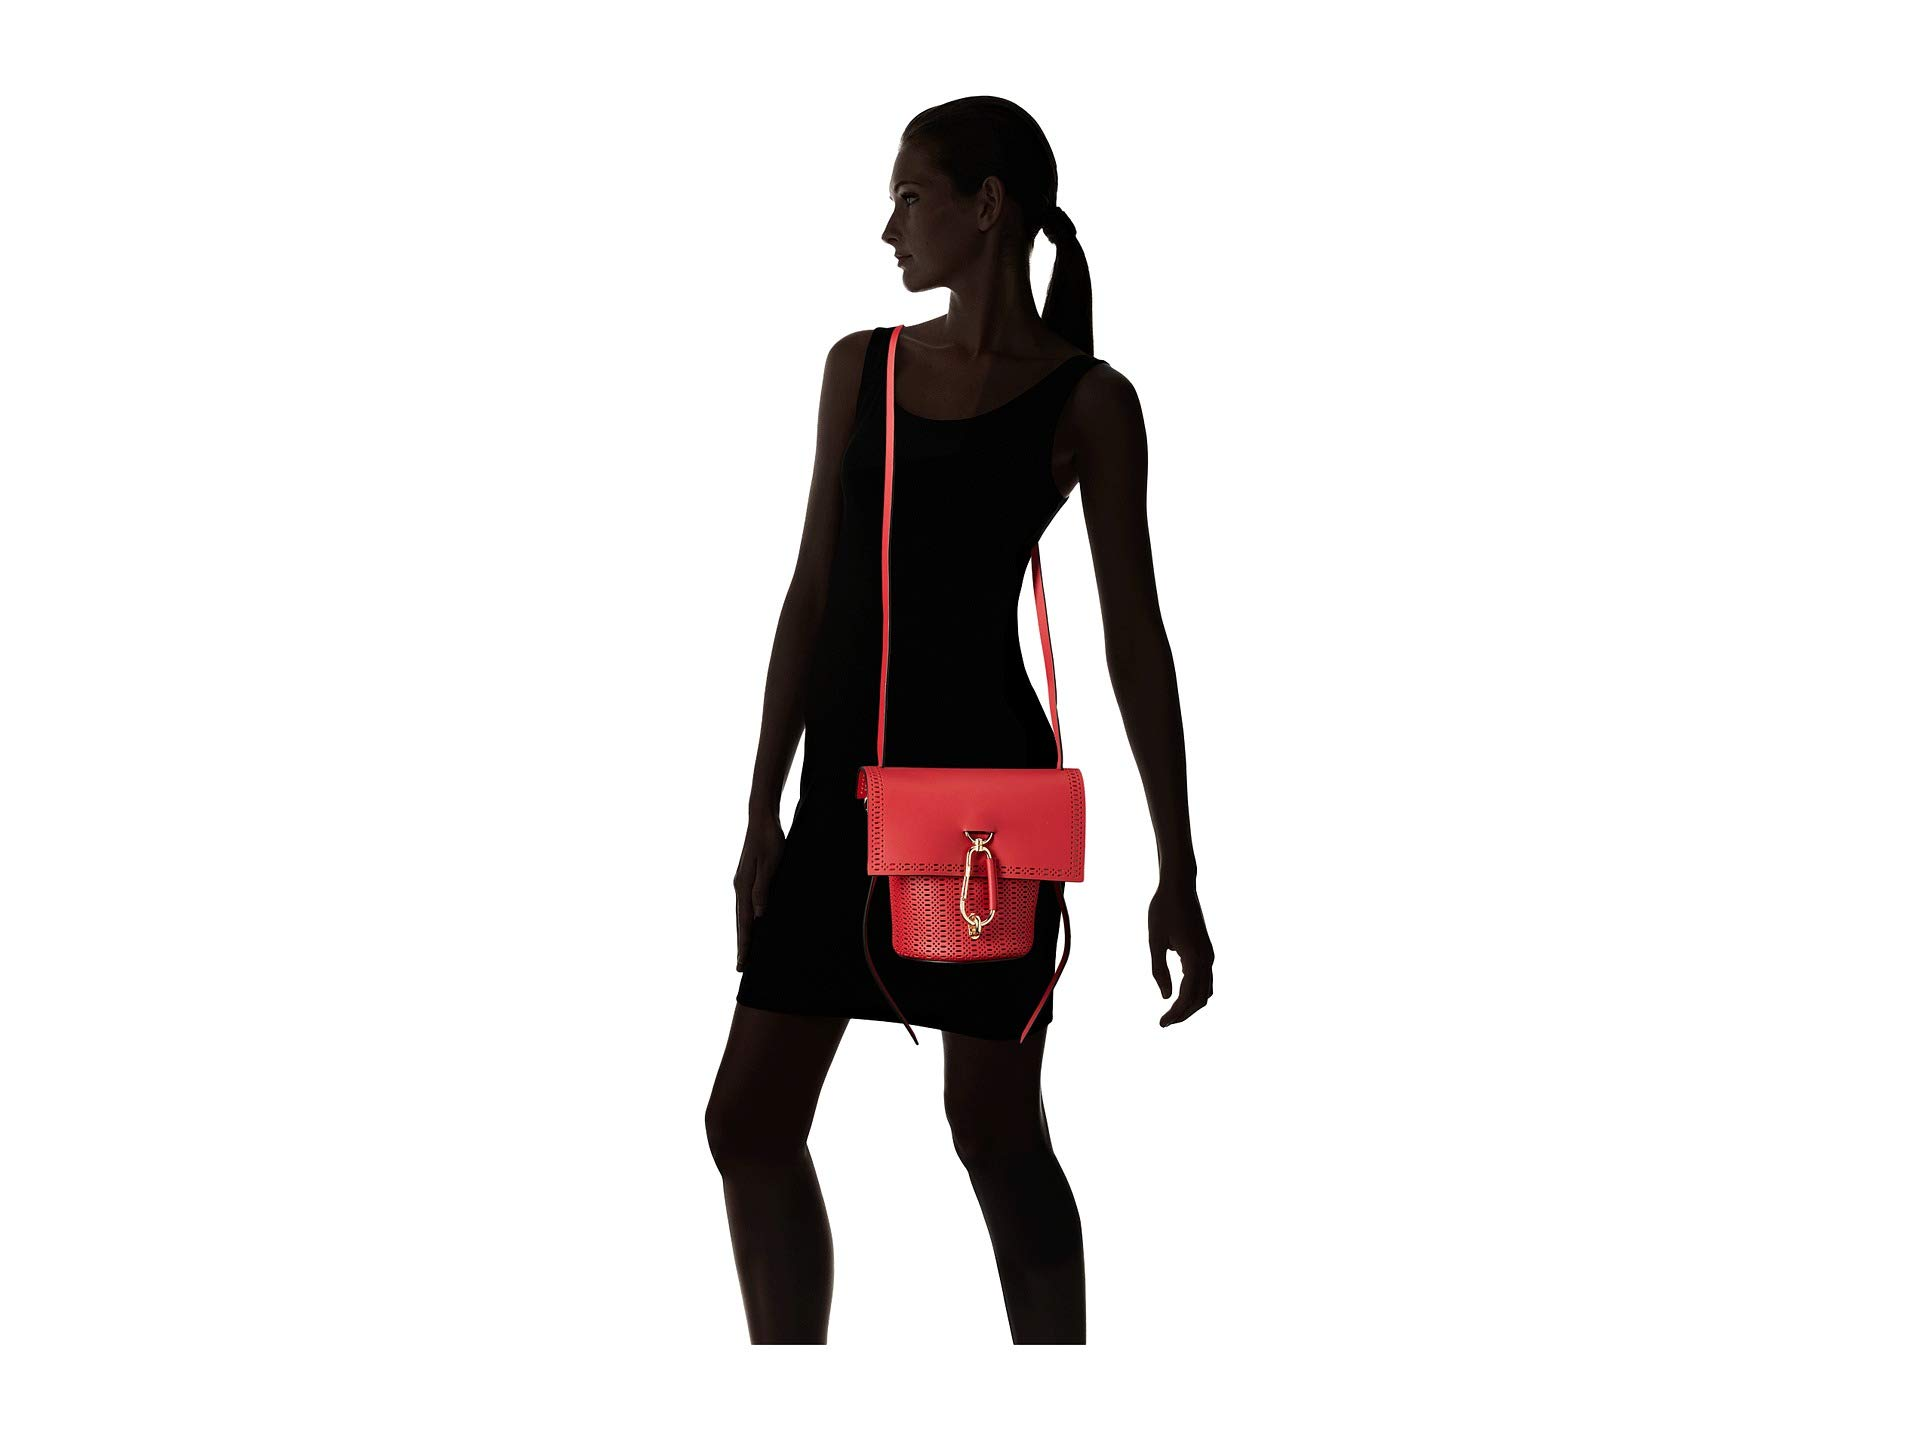 Perforation Pepper Chili Zac Crossbody Belay Posen gqSFYYOU